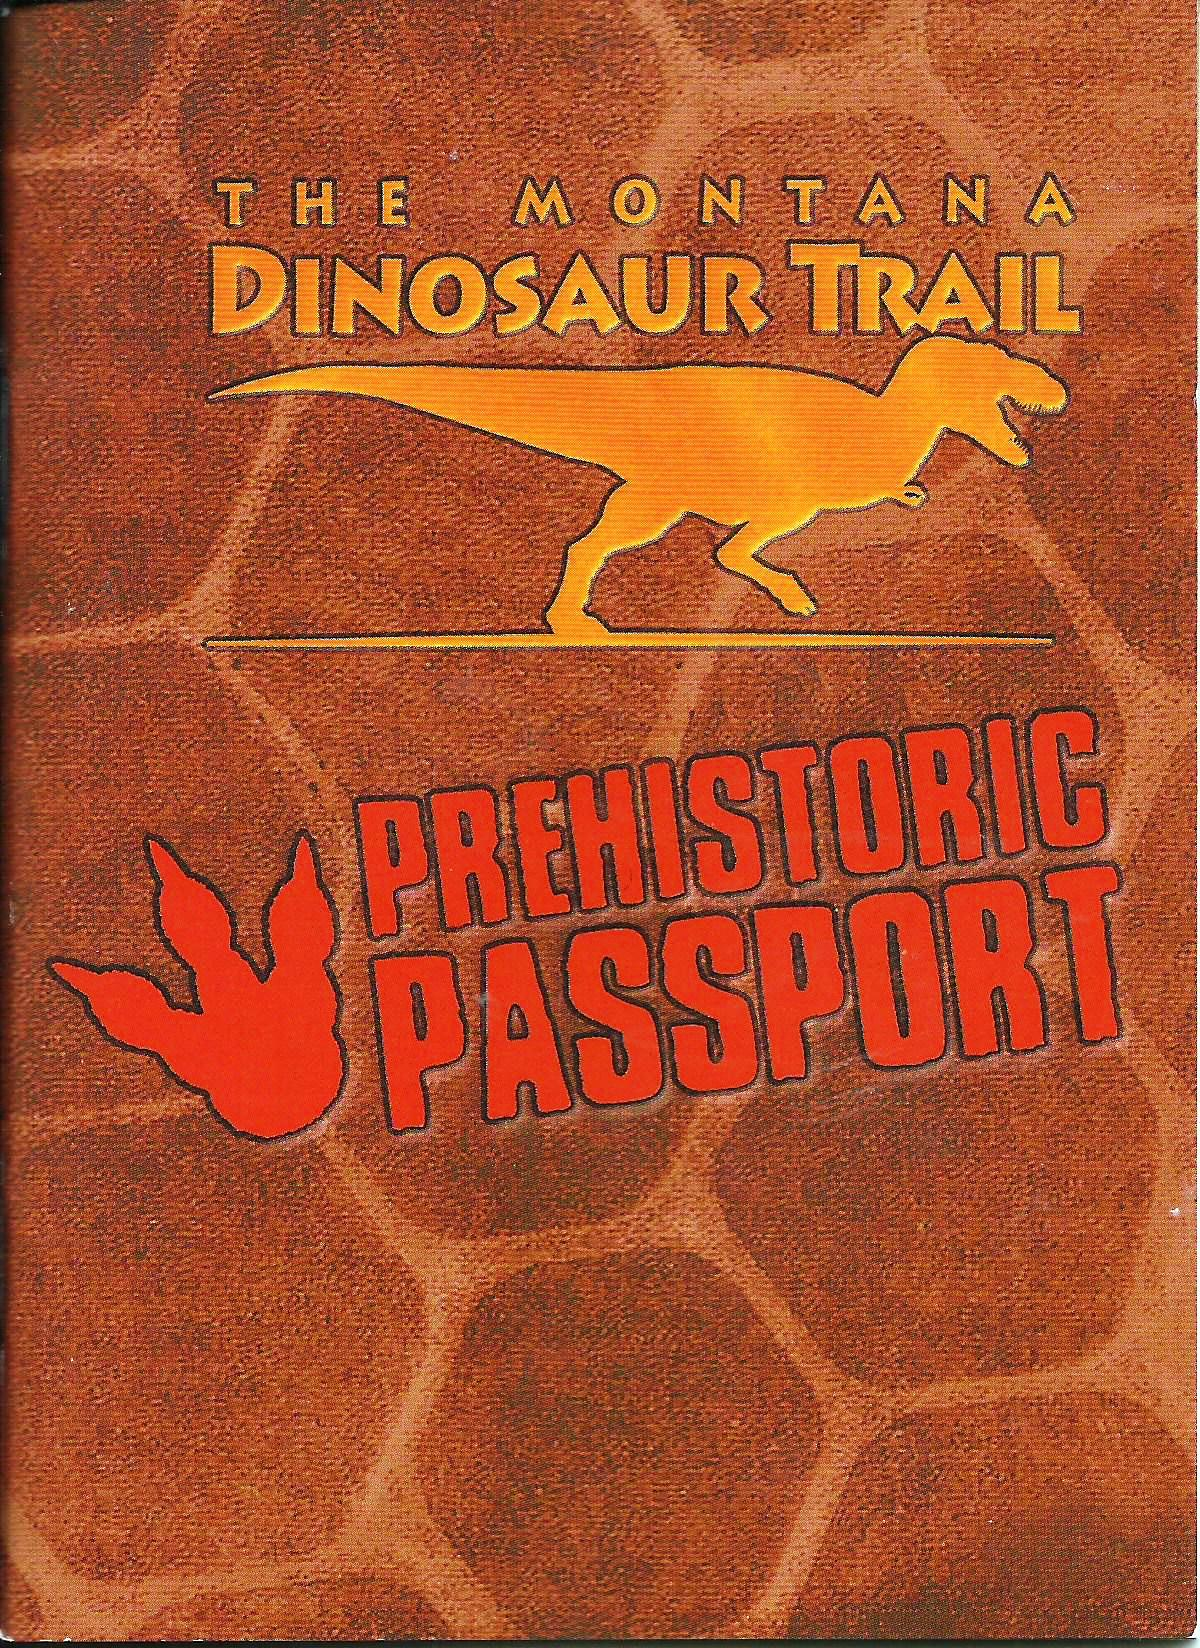 The Montana Dinosaur Trail